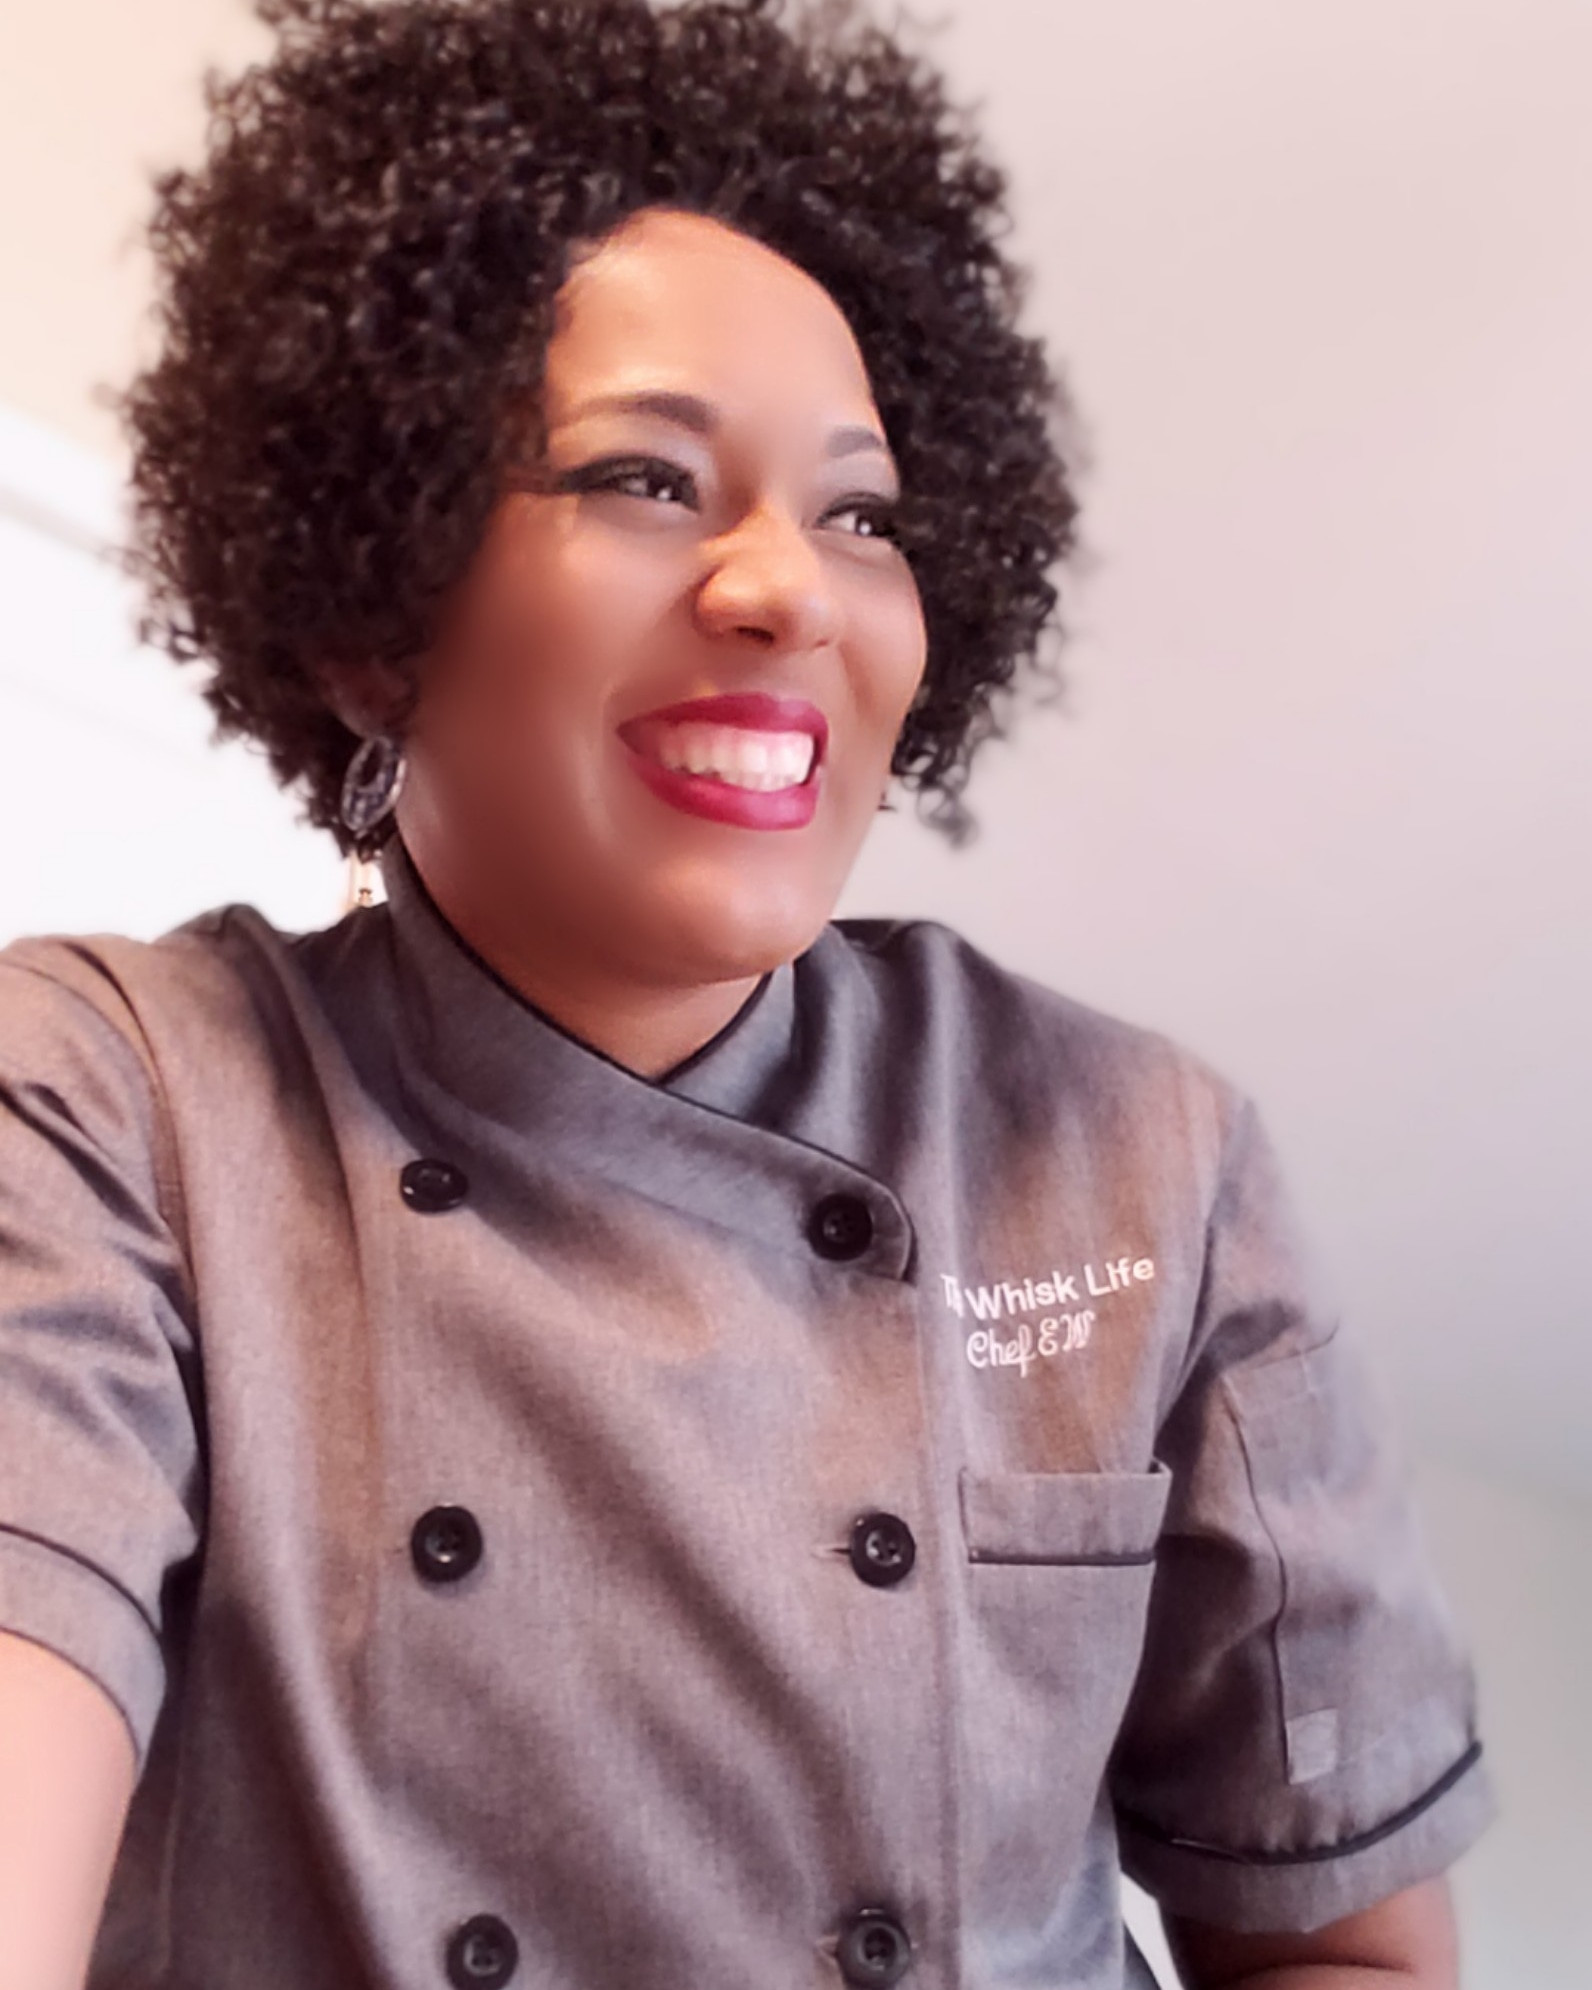 Private Cook/ Whisk Experience